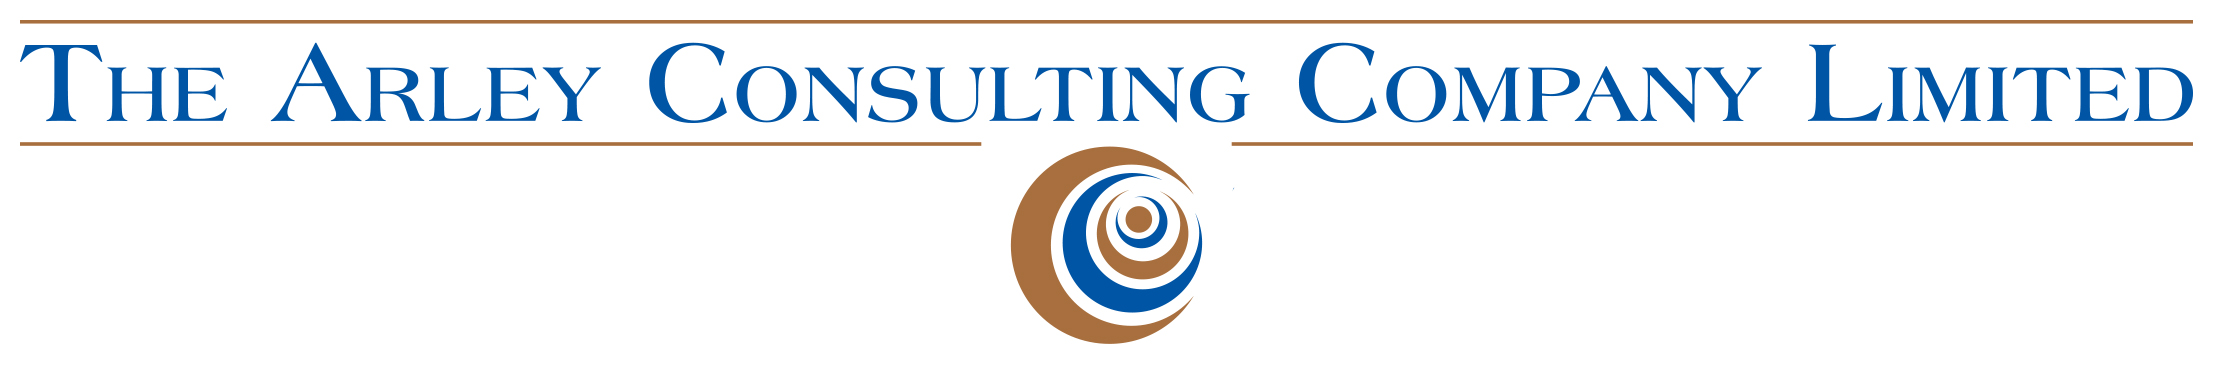 The Arley Consulting Company Ltd